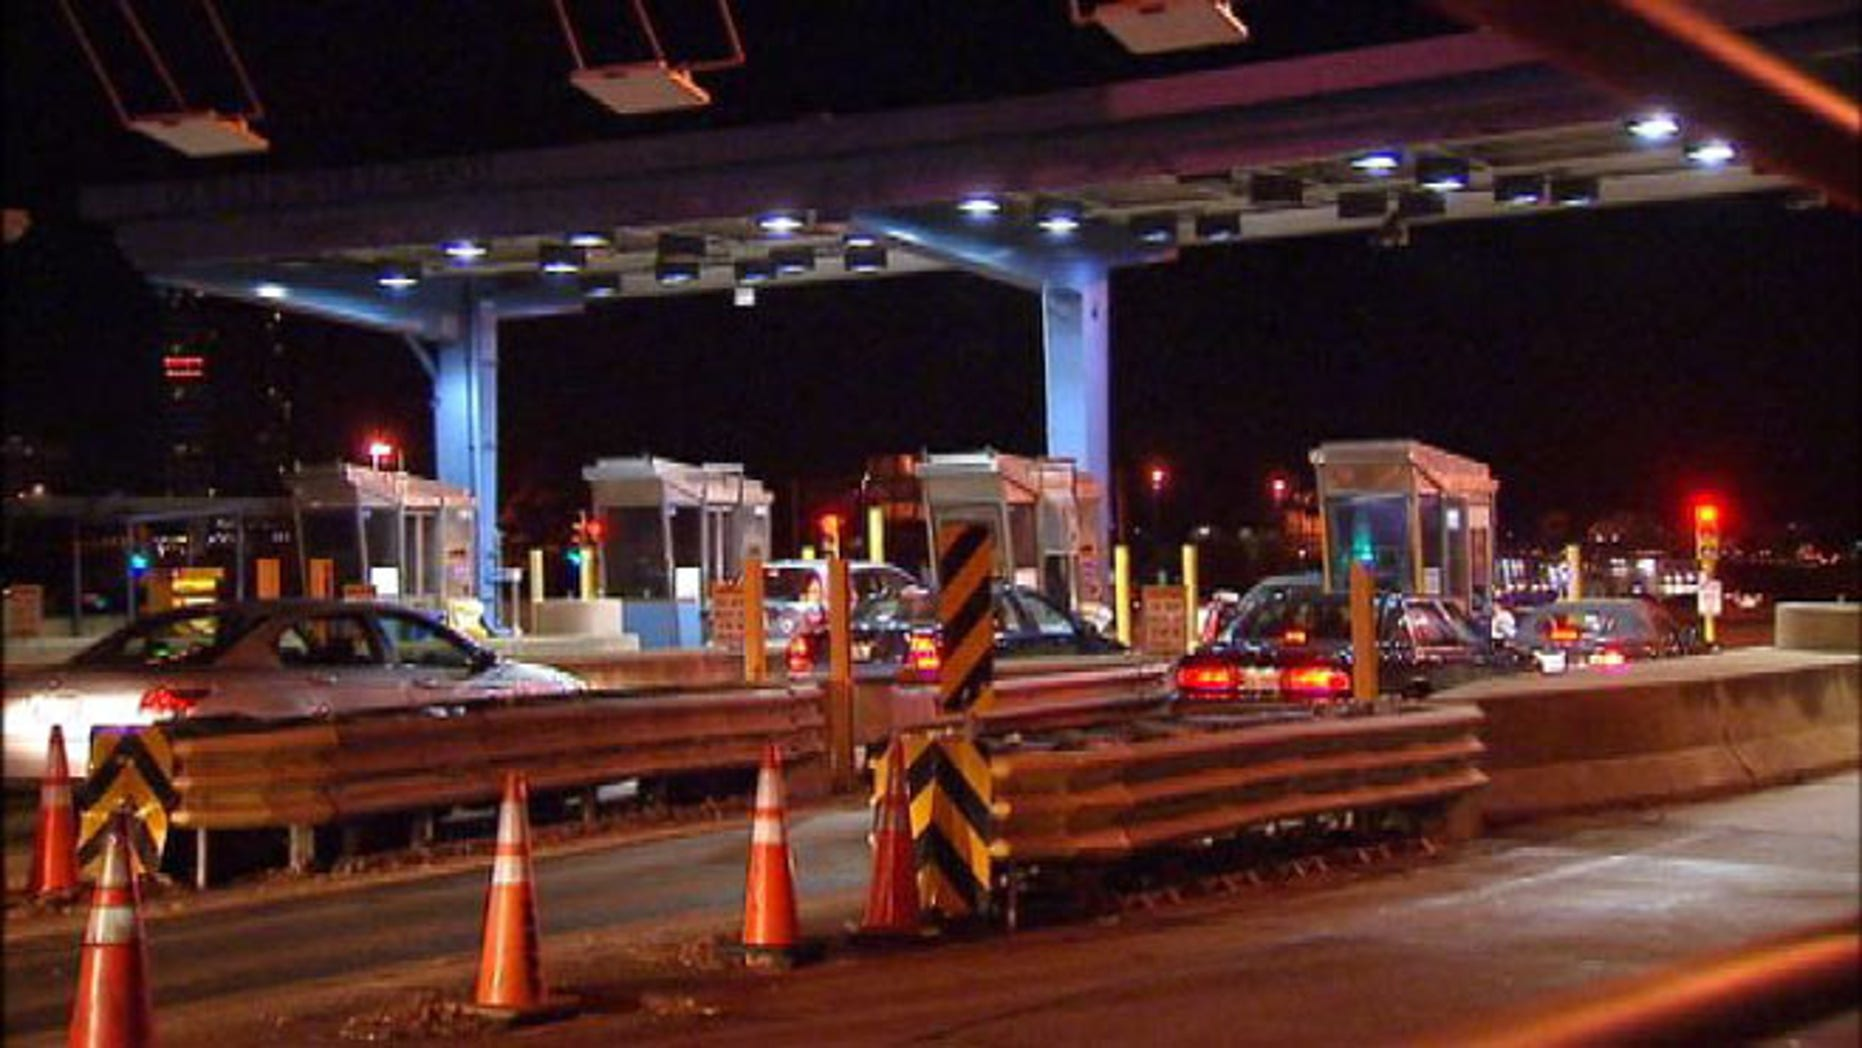 A Dulles Toll Road toll booth station.